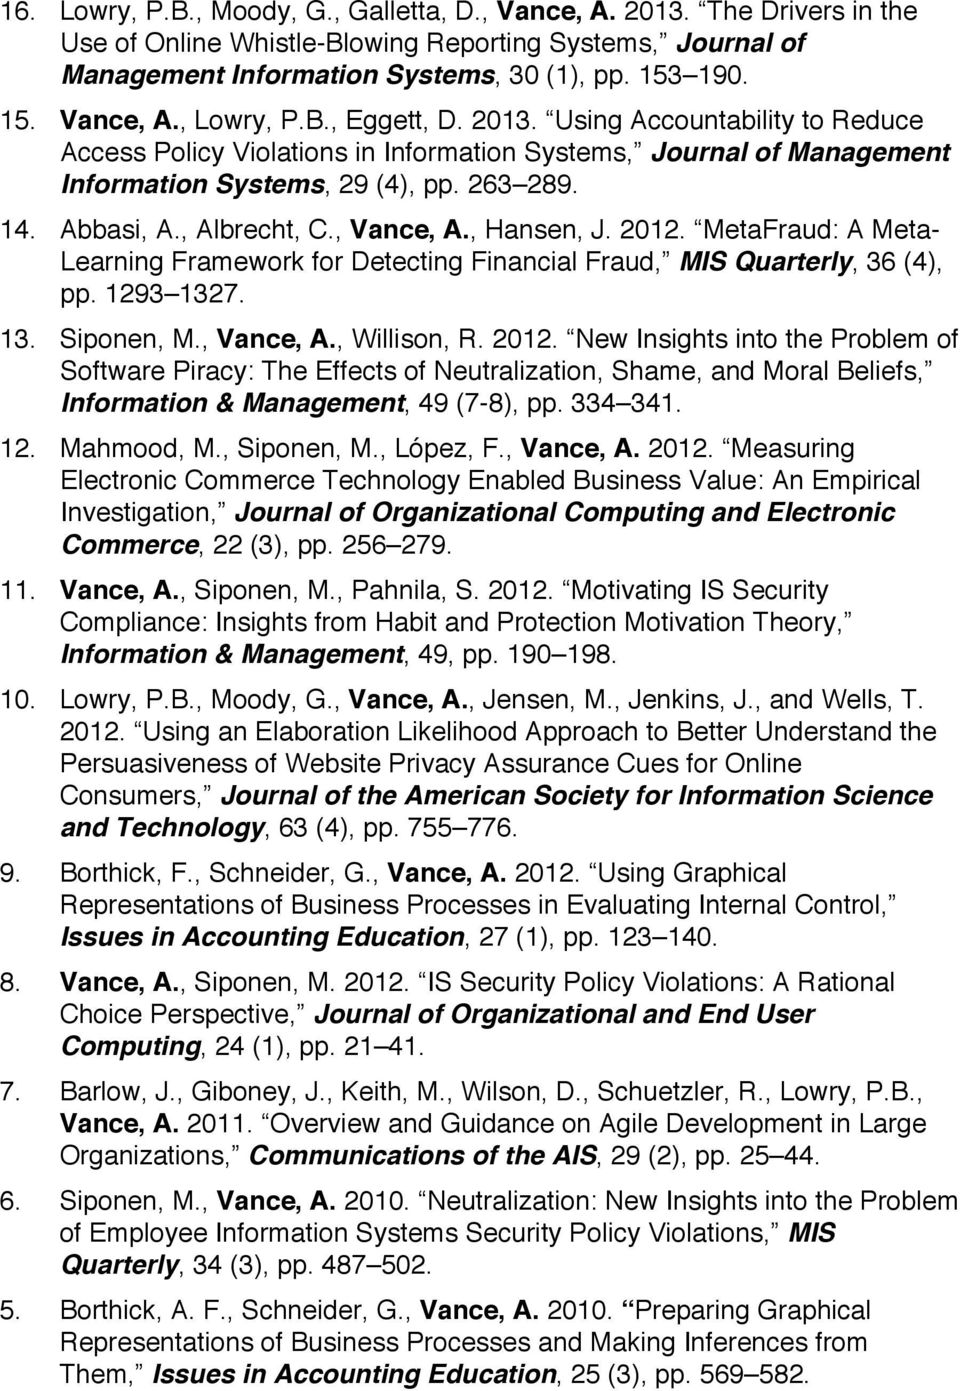 , Vance, A., Hansen, J. 2012. MetaFraud: A Meta- Learning Framework for Detecting Financial Fraud, MIS Quarterly, 36 (4), pp. 1293 1327. 13. Siponen, M., Vance, A., Willison, R. 2012. New Insights into the Problem of Software Piracy: The Effects of Neutralization, Shame, and Moral Beliefs, Information & Management, 49 (7-8), pp.